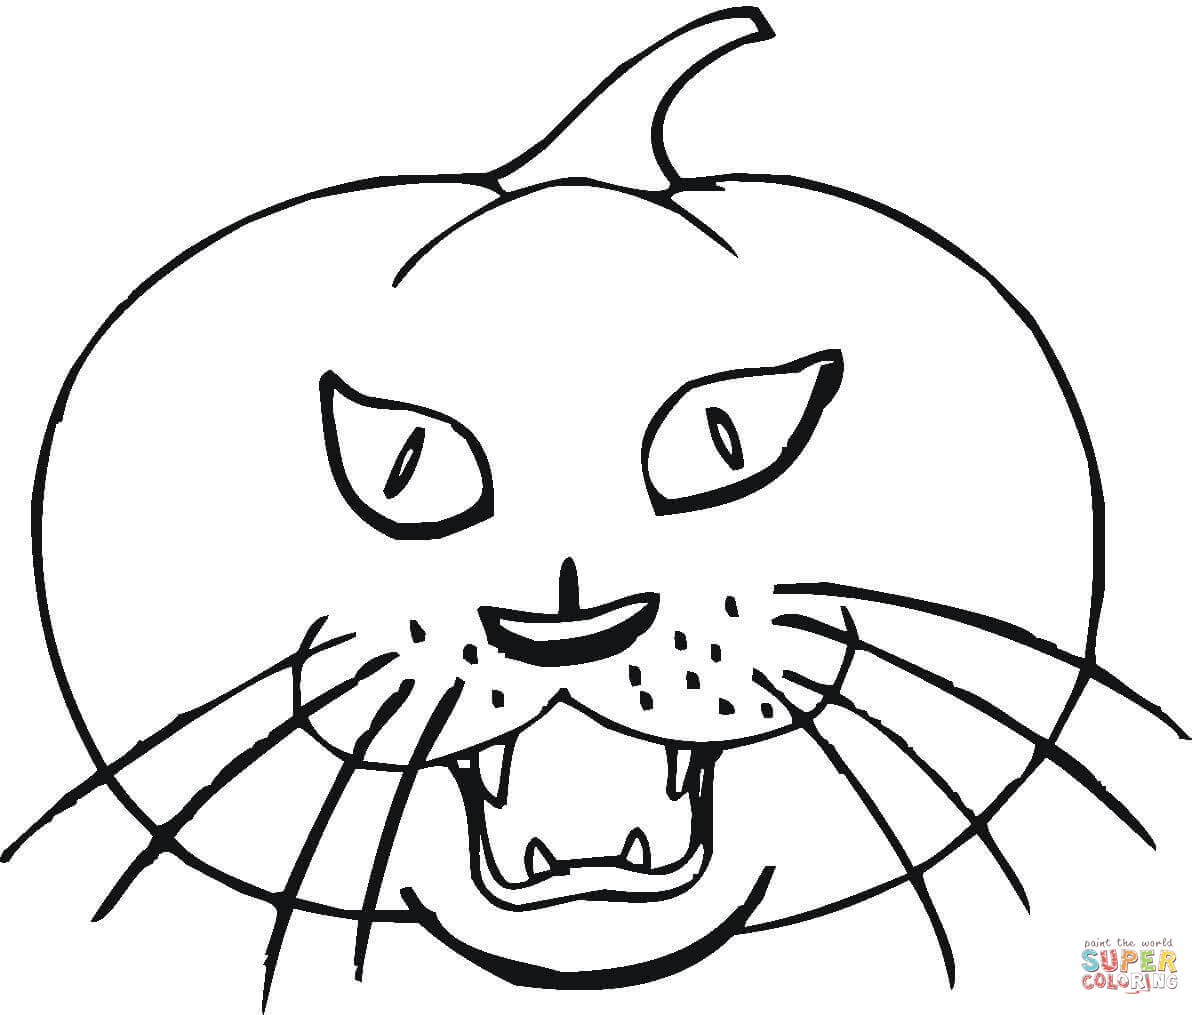 printable cat face coloring pages - photo#46